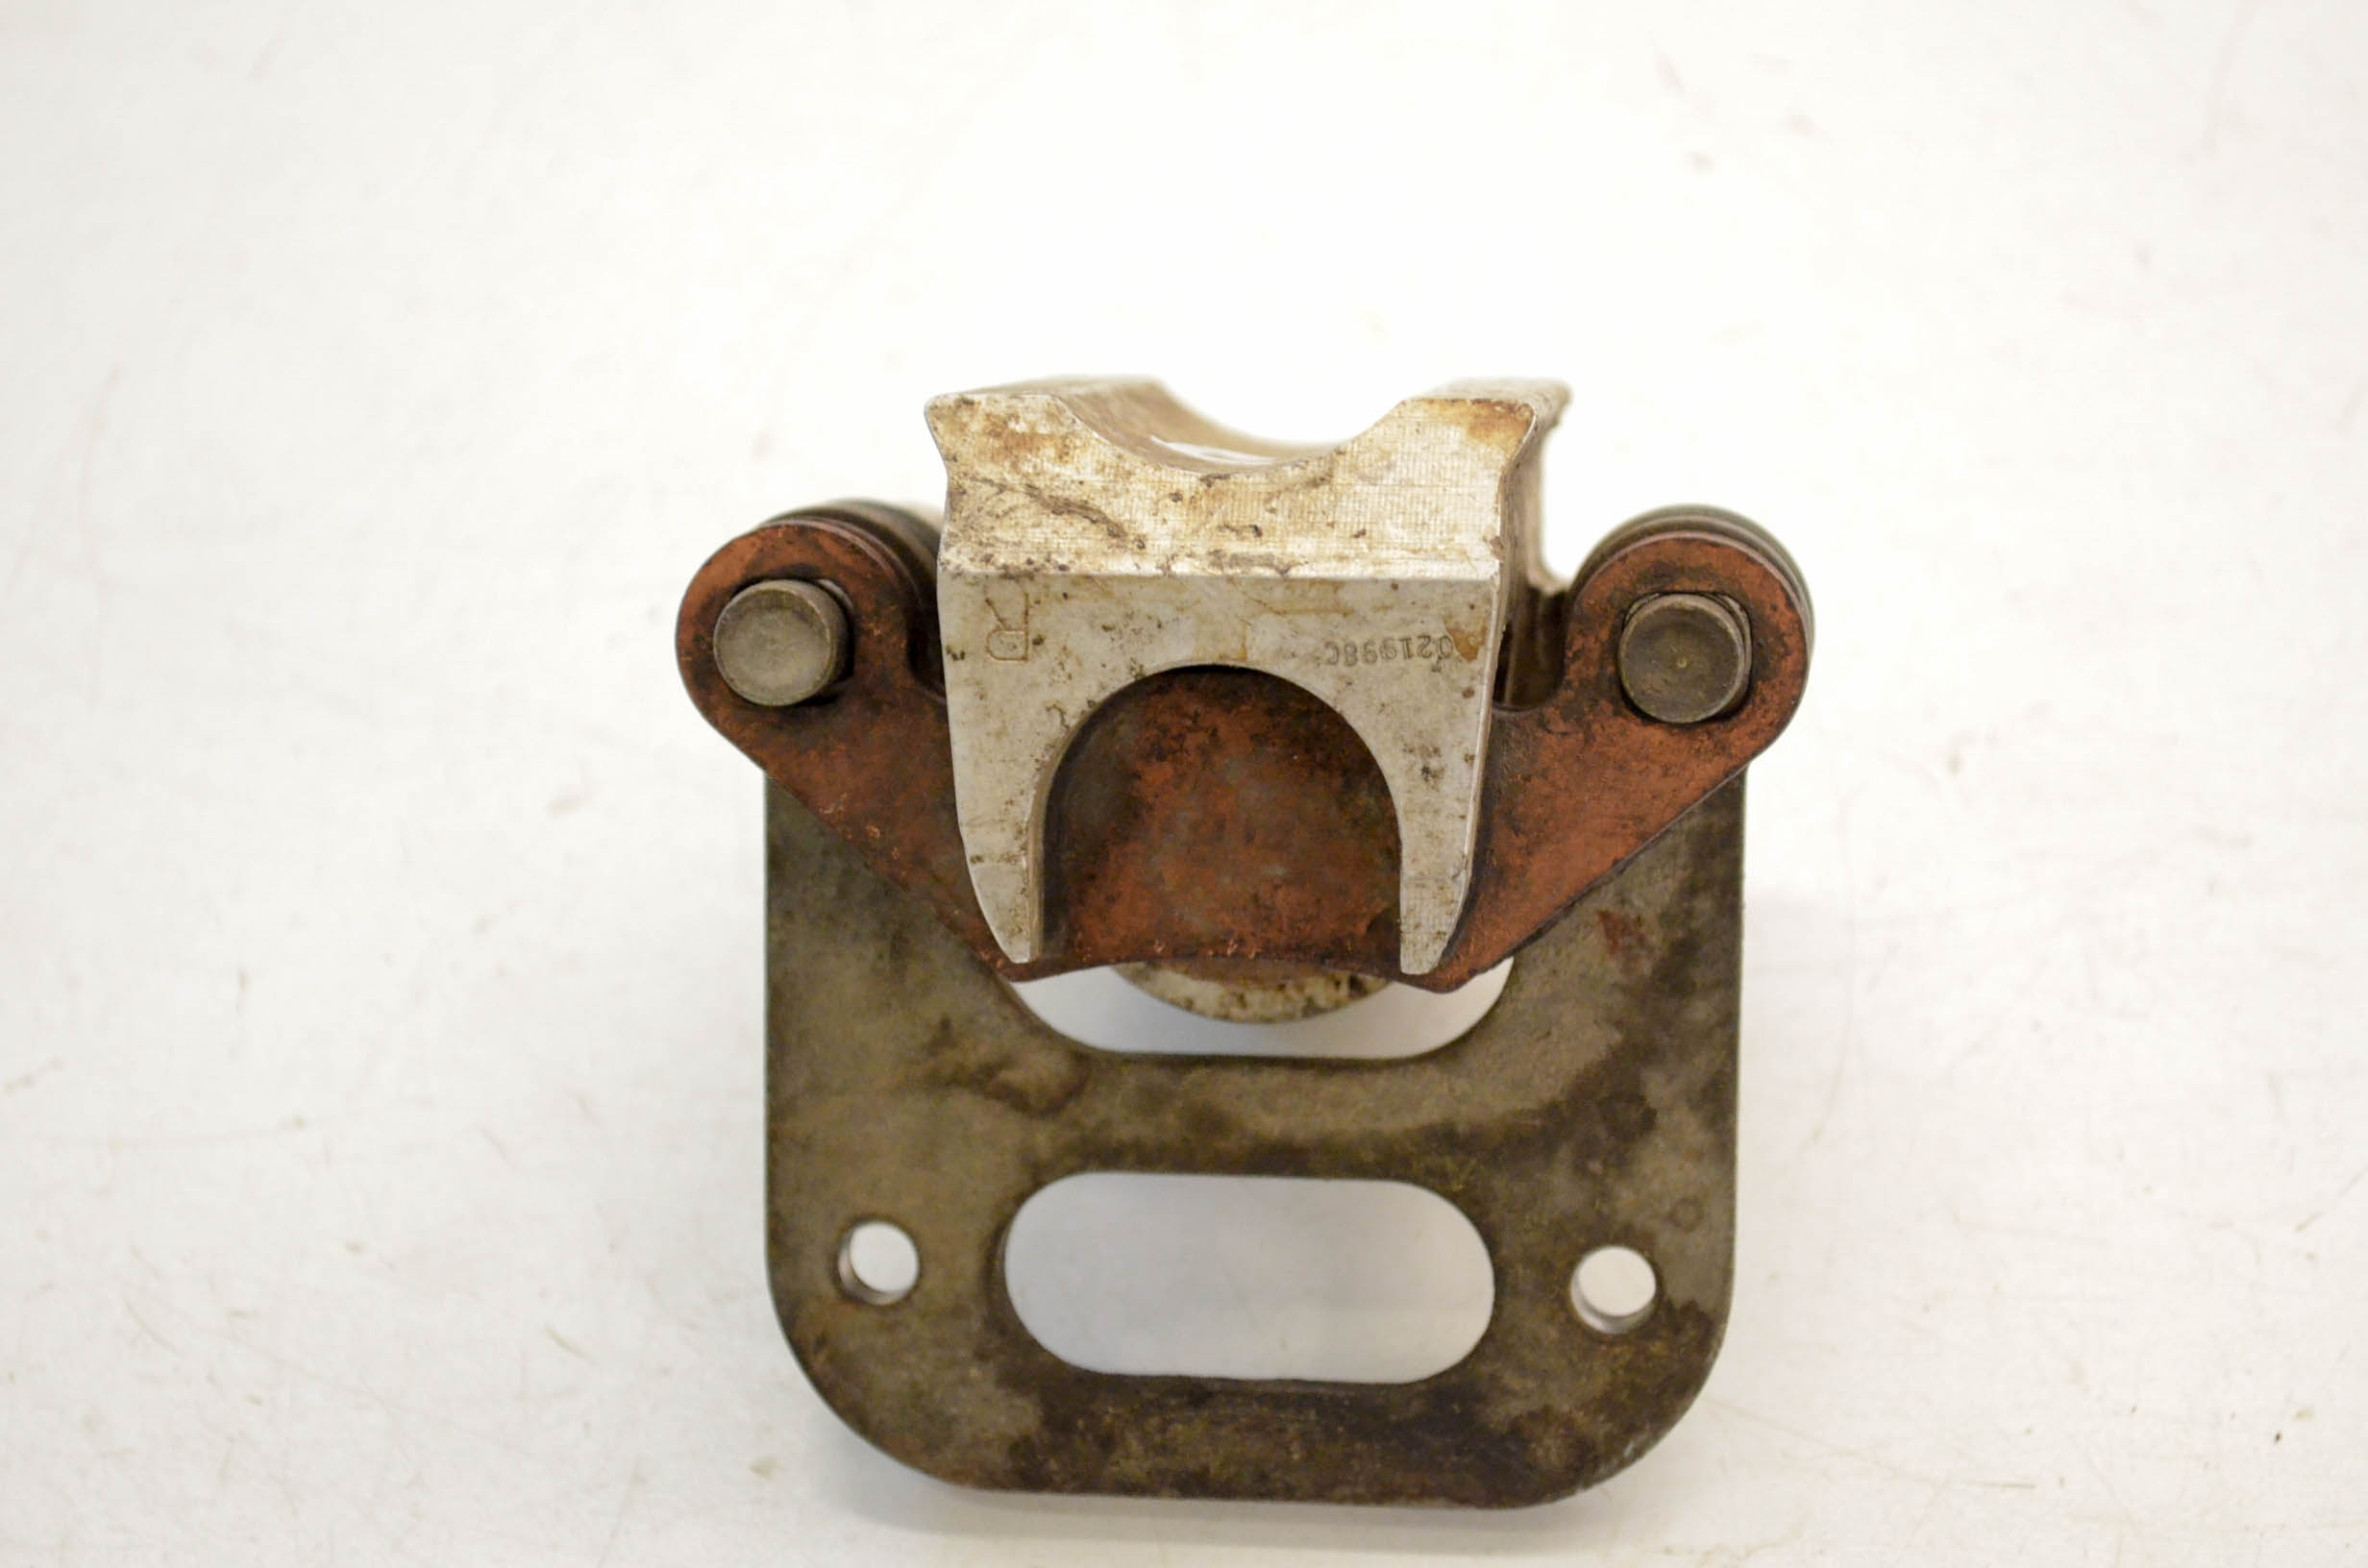 New Front Brake Caliper For Polaris Sportsman 400 500 With Pads Left/&Right 93-98